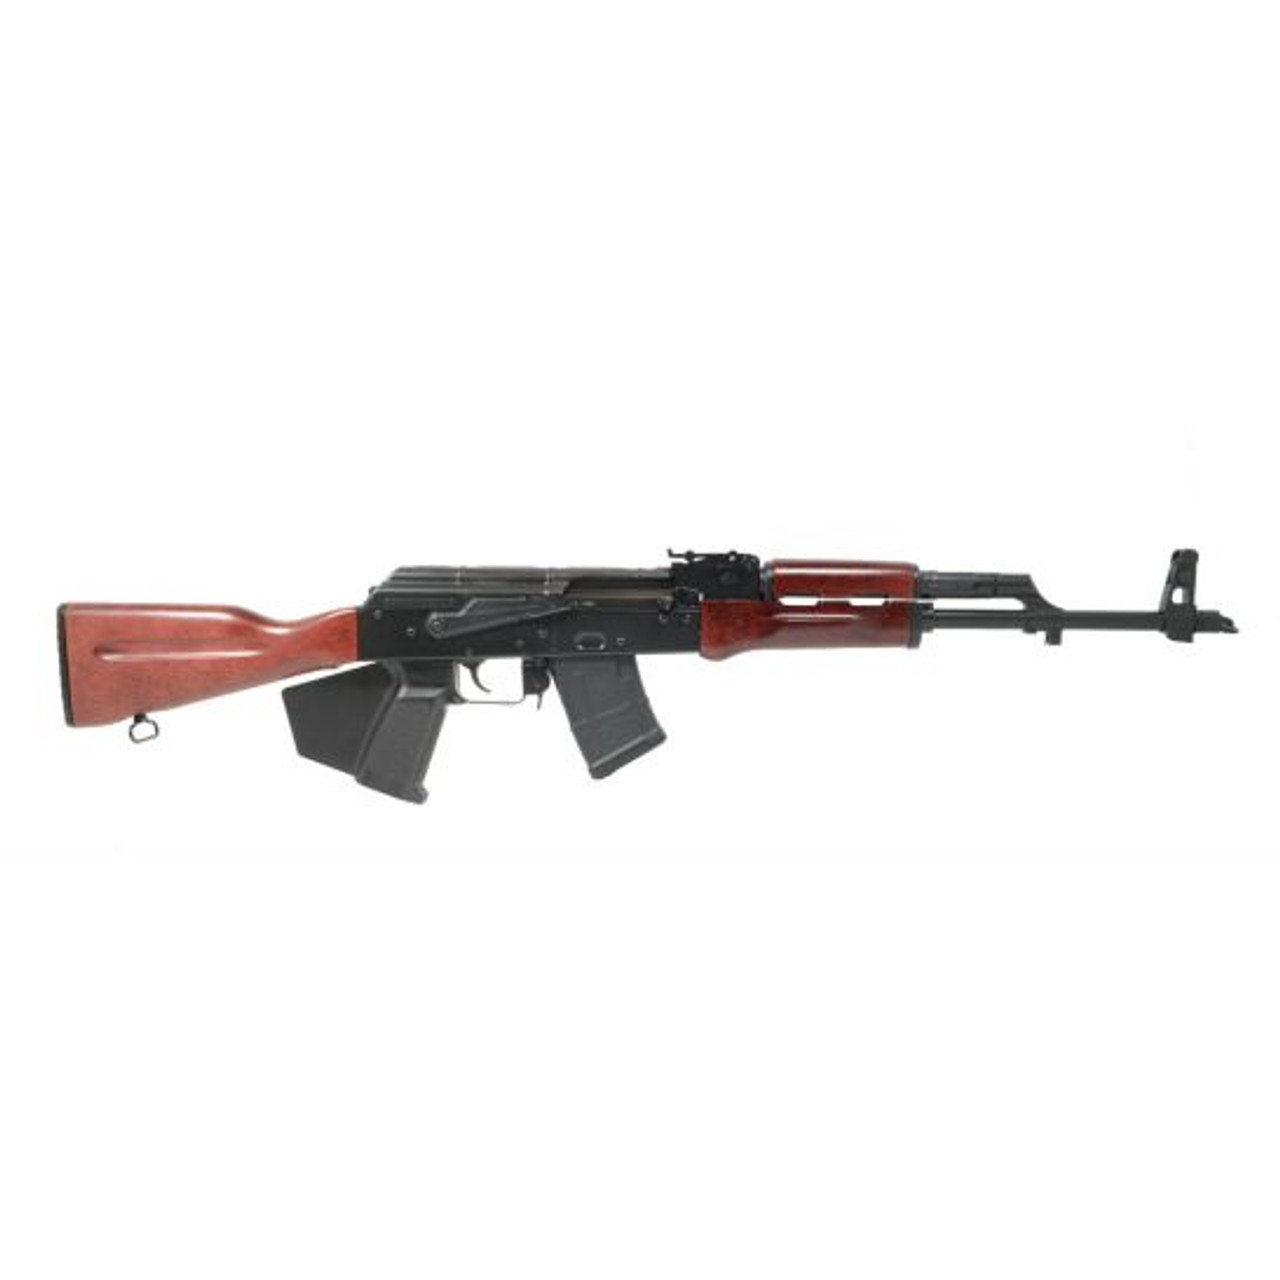 Palmetto State Armory PSAK-47 GF3 Forged Featureless CALIFORNIA LEGAL - 7.62x39 - Red Wood